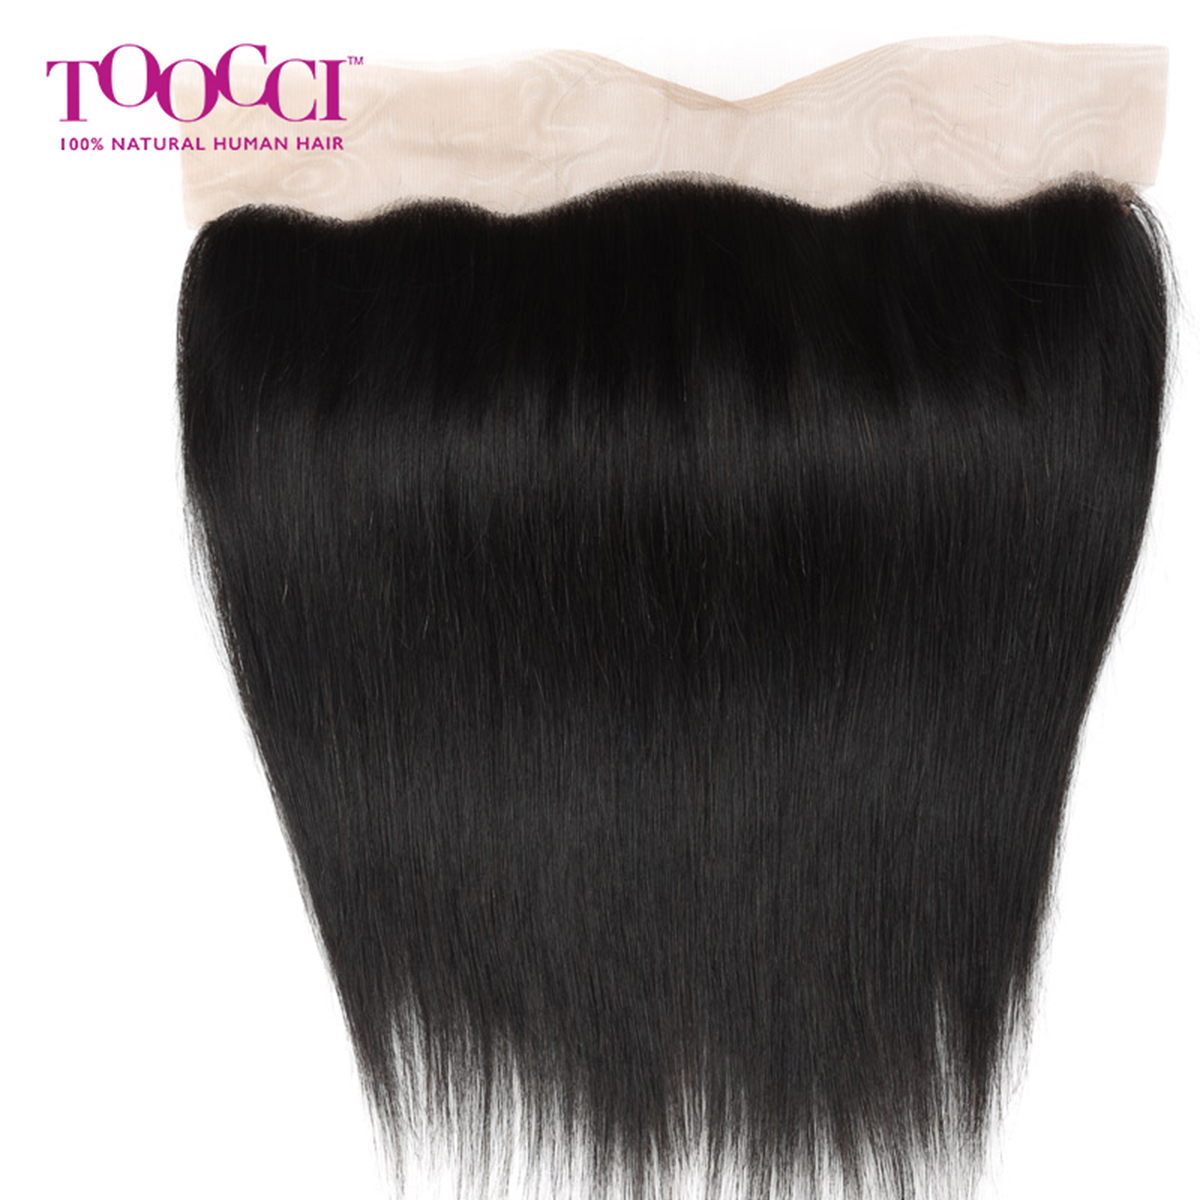 8A-Brazilian-Virgin-Straight-100-Human-Hair-1-3-Bundles-with-Lace-Closure-US thumbnail 14